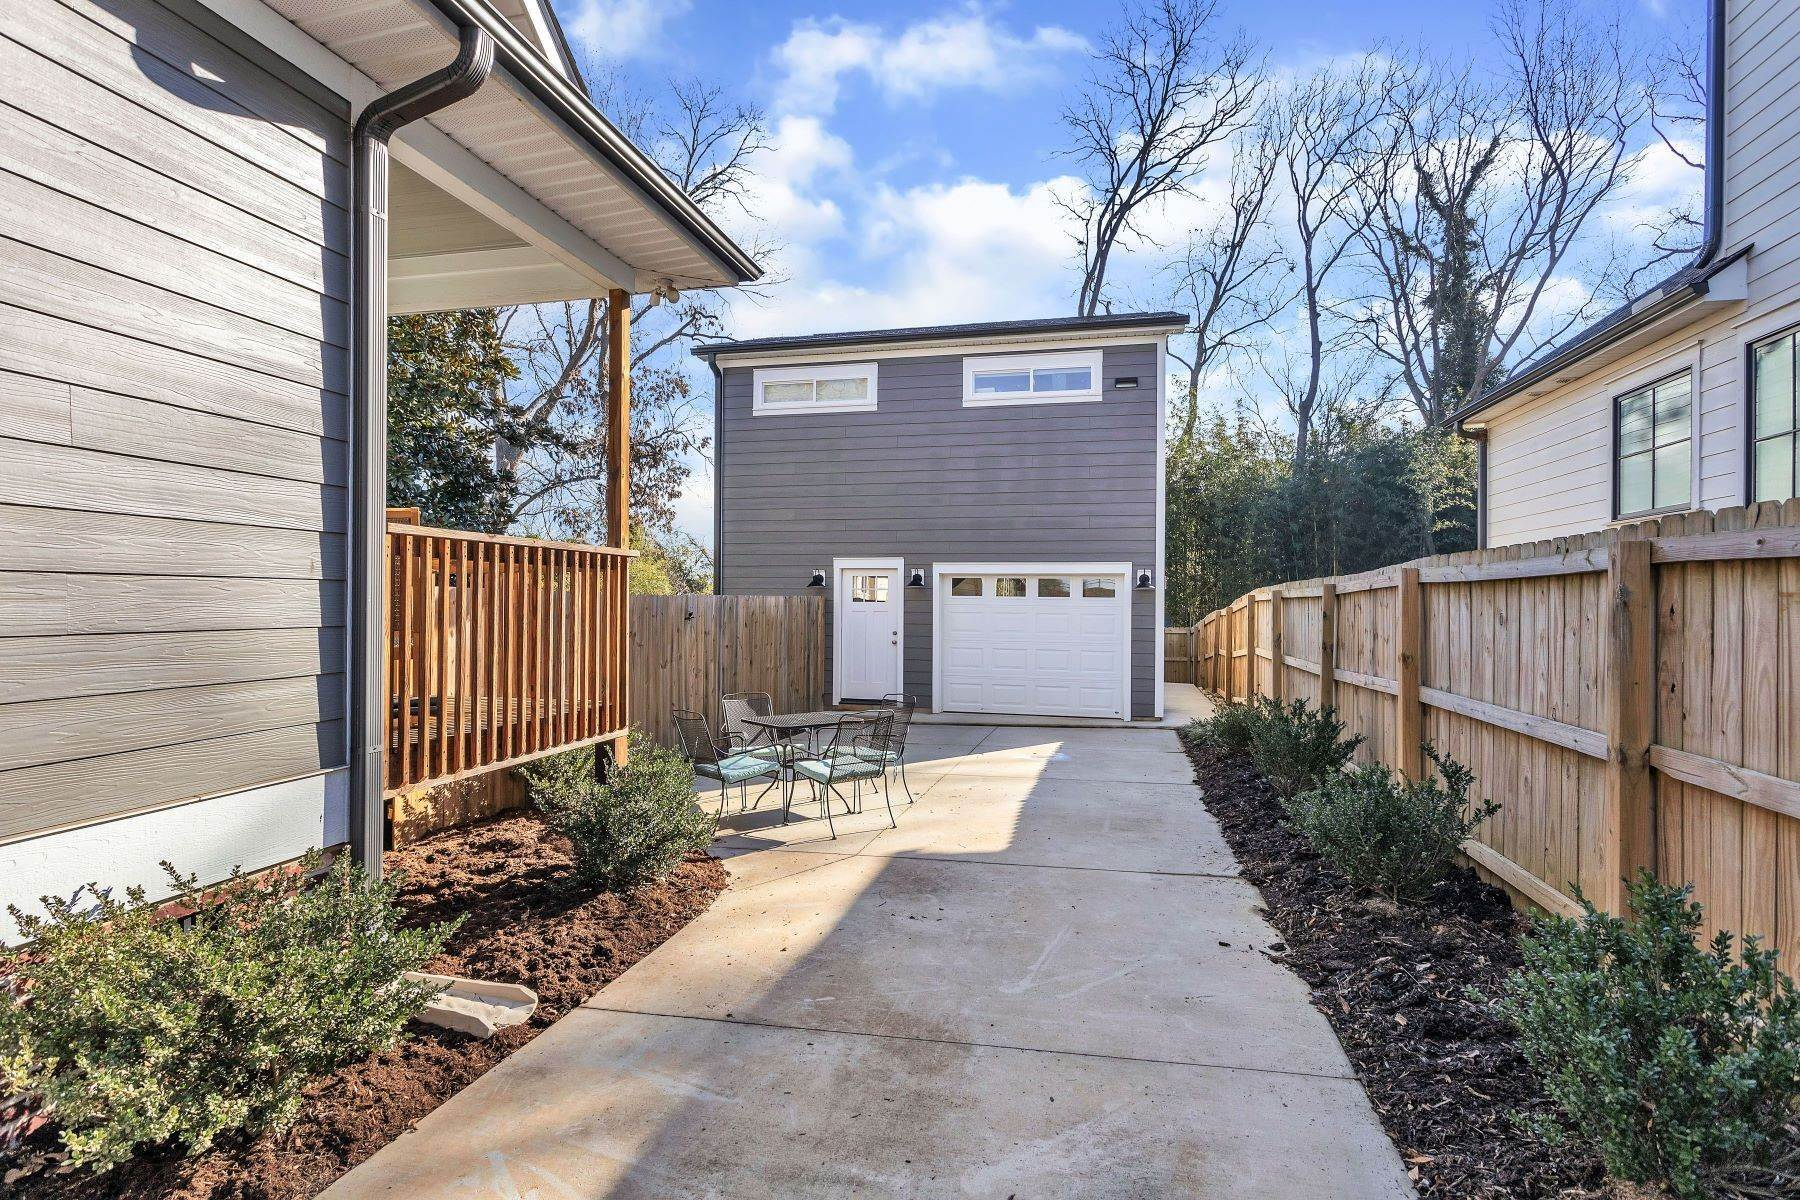 25. Single Family Homes for Sale at UNDER CONTRACT! 114 North Calhoun Street, Greenville, SC 29601 Greenville, SC 29601